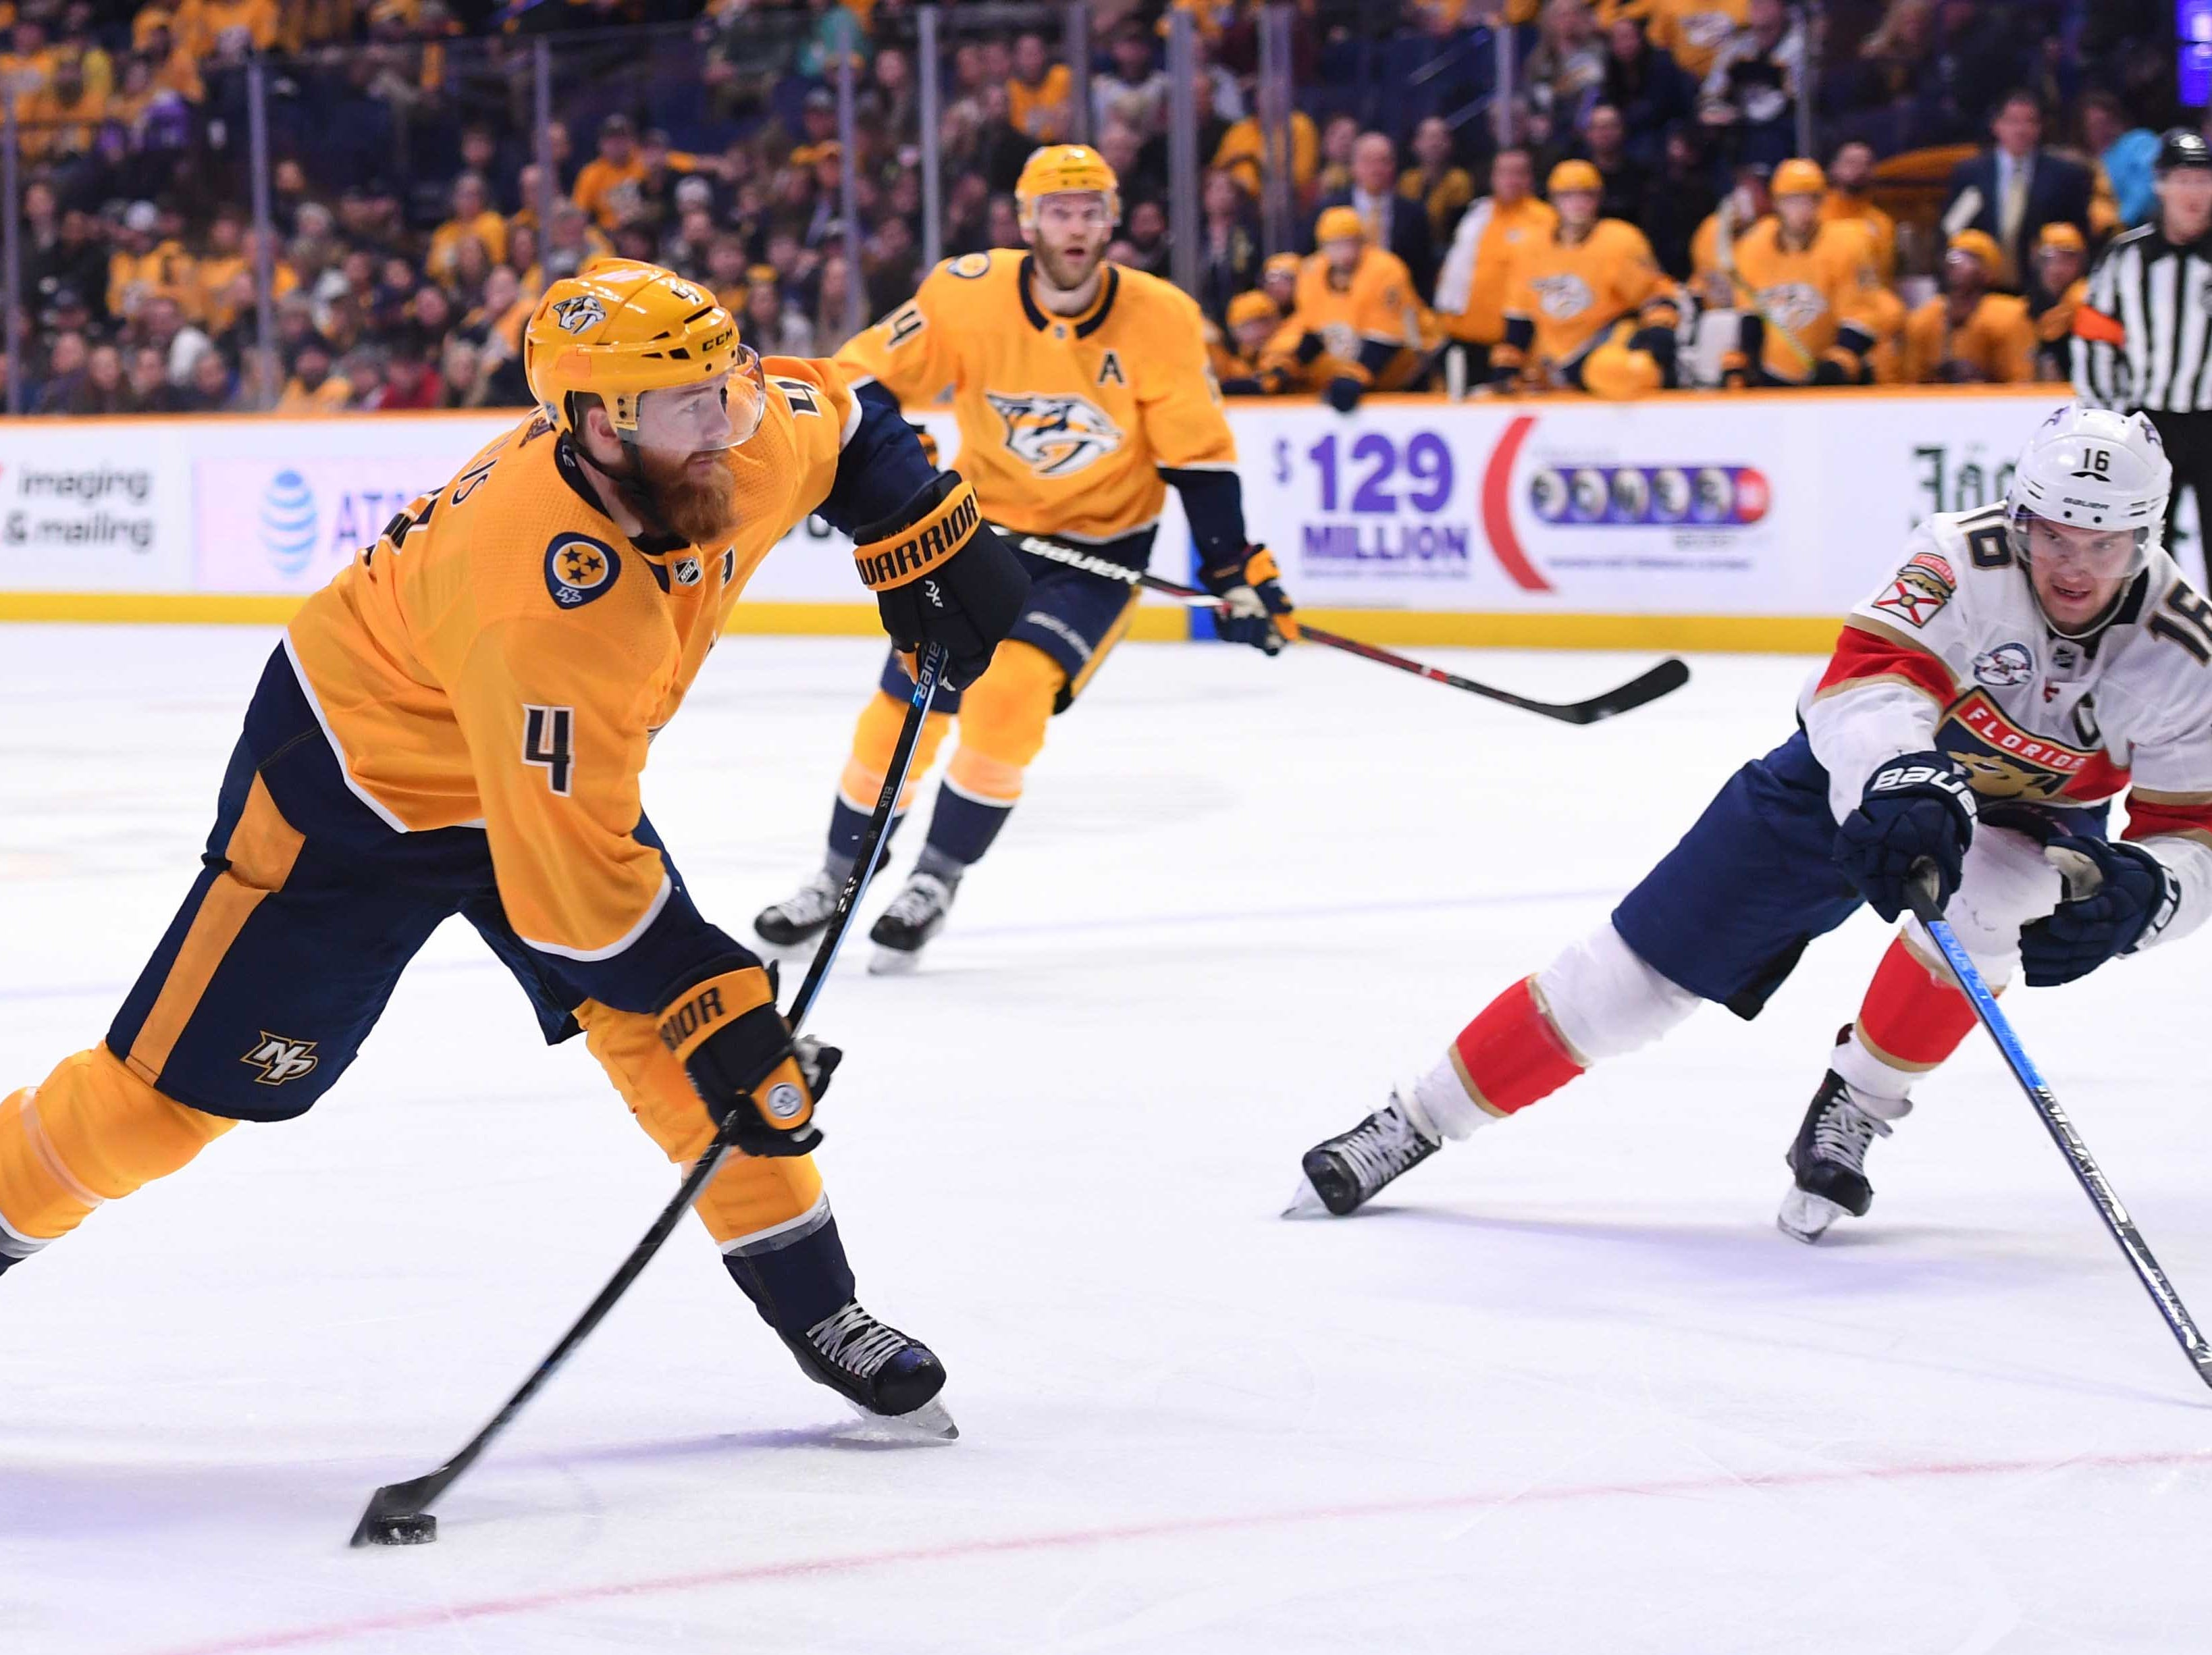 Nashville Predators defenseman Ryan Ellis (4) attempts a shot during the first period against the Florida Panthers at Bridgestone Arena.